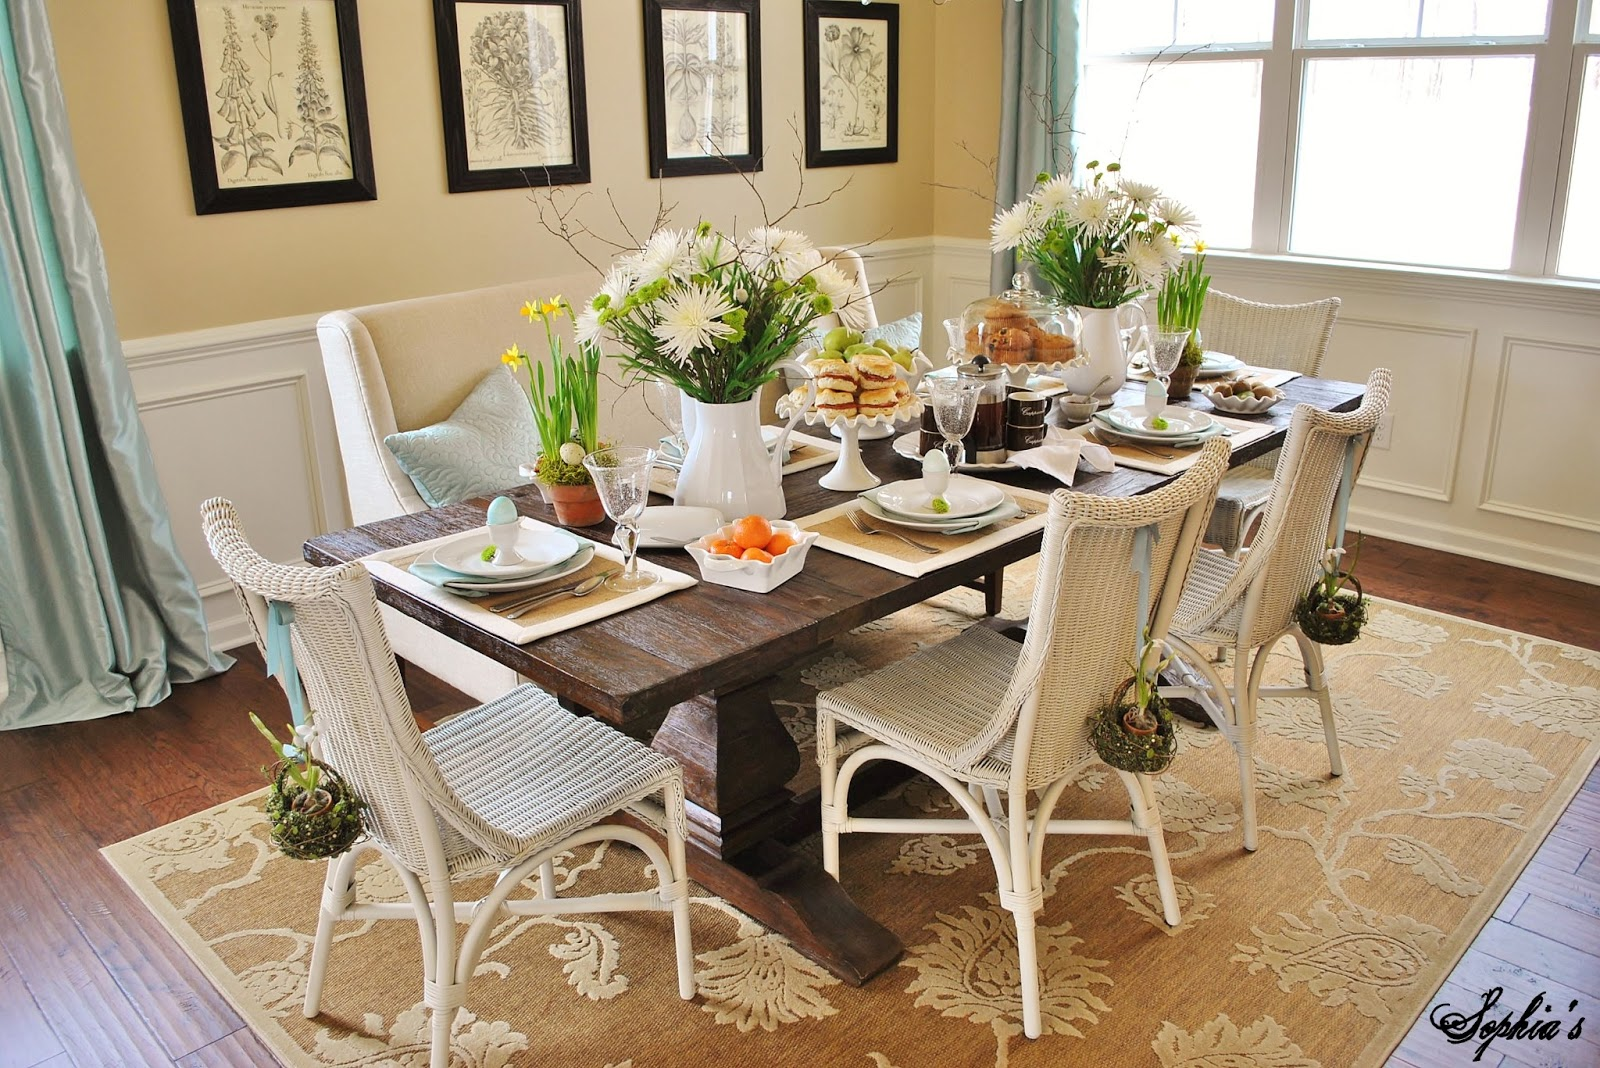 Sophia's: Cottage-Inspired, Casual Easter Brunch And